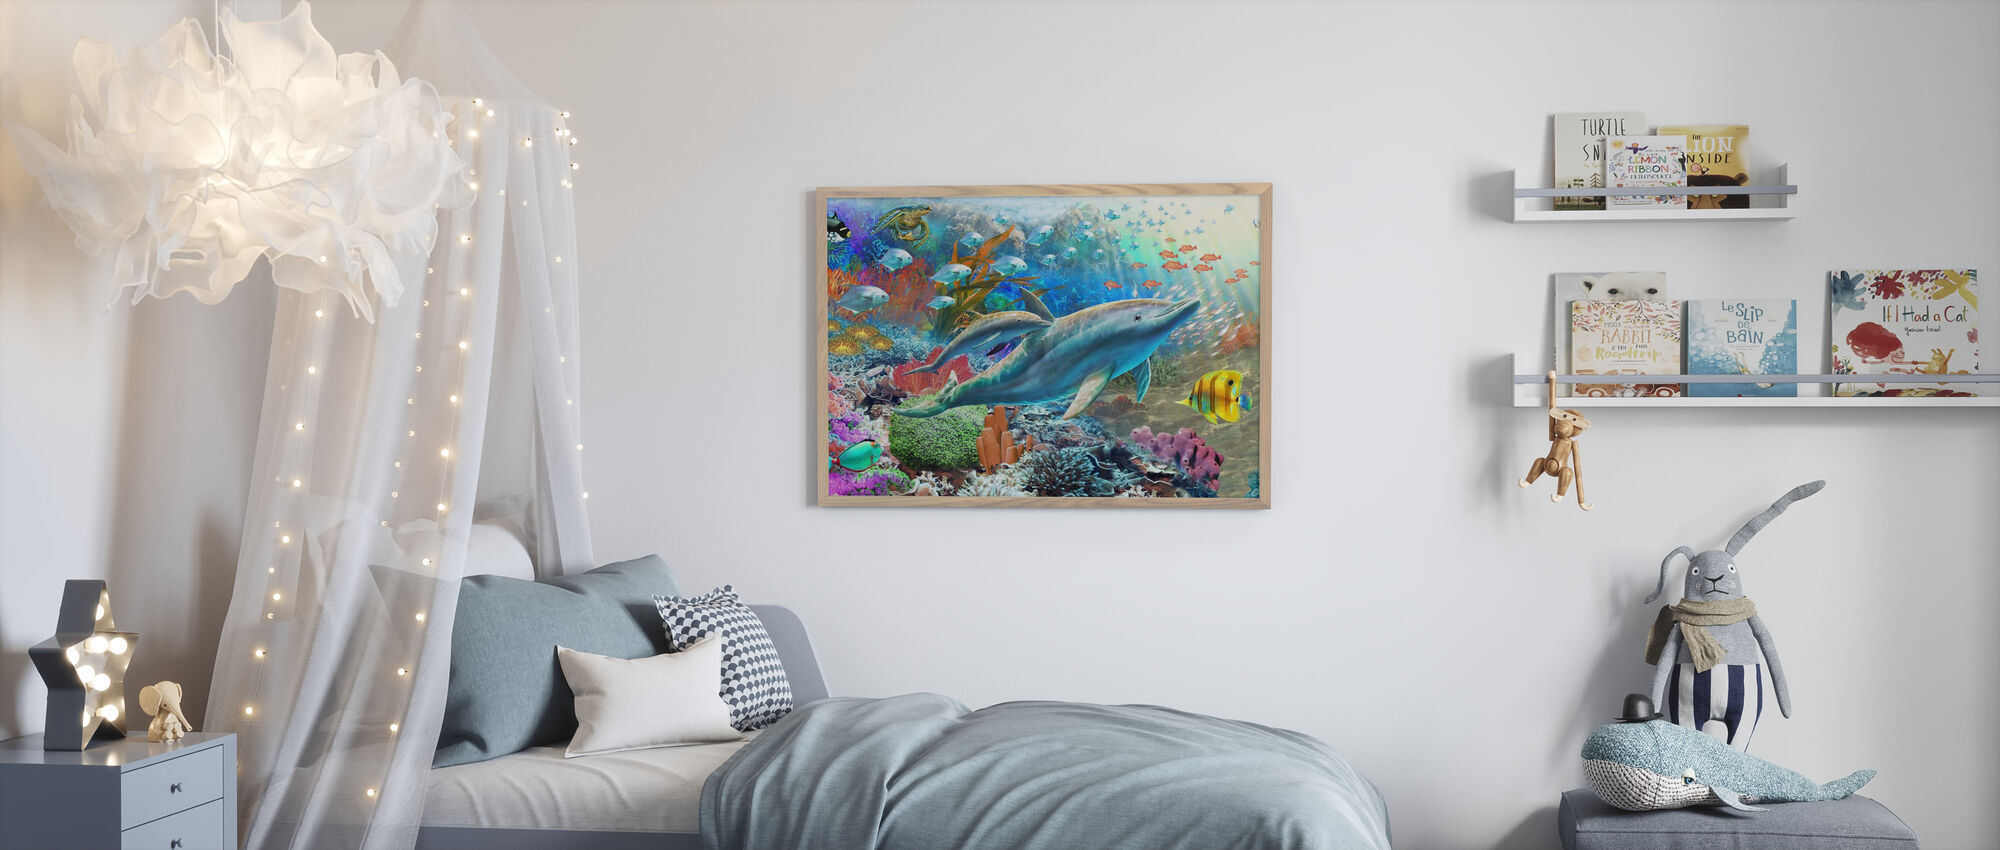 Land and Water Utopia I - Poster - Kids Room